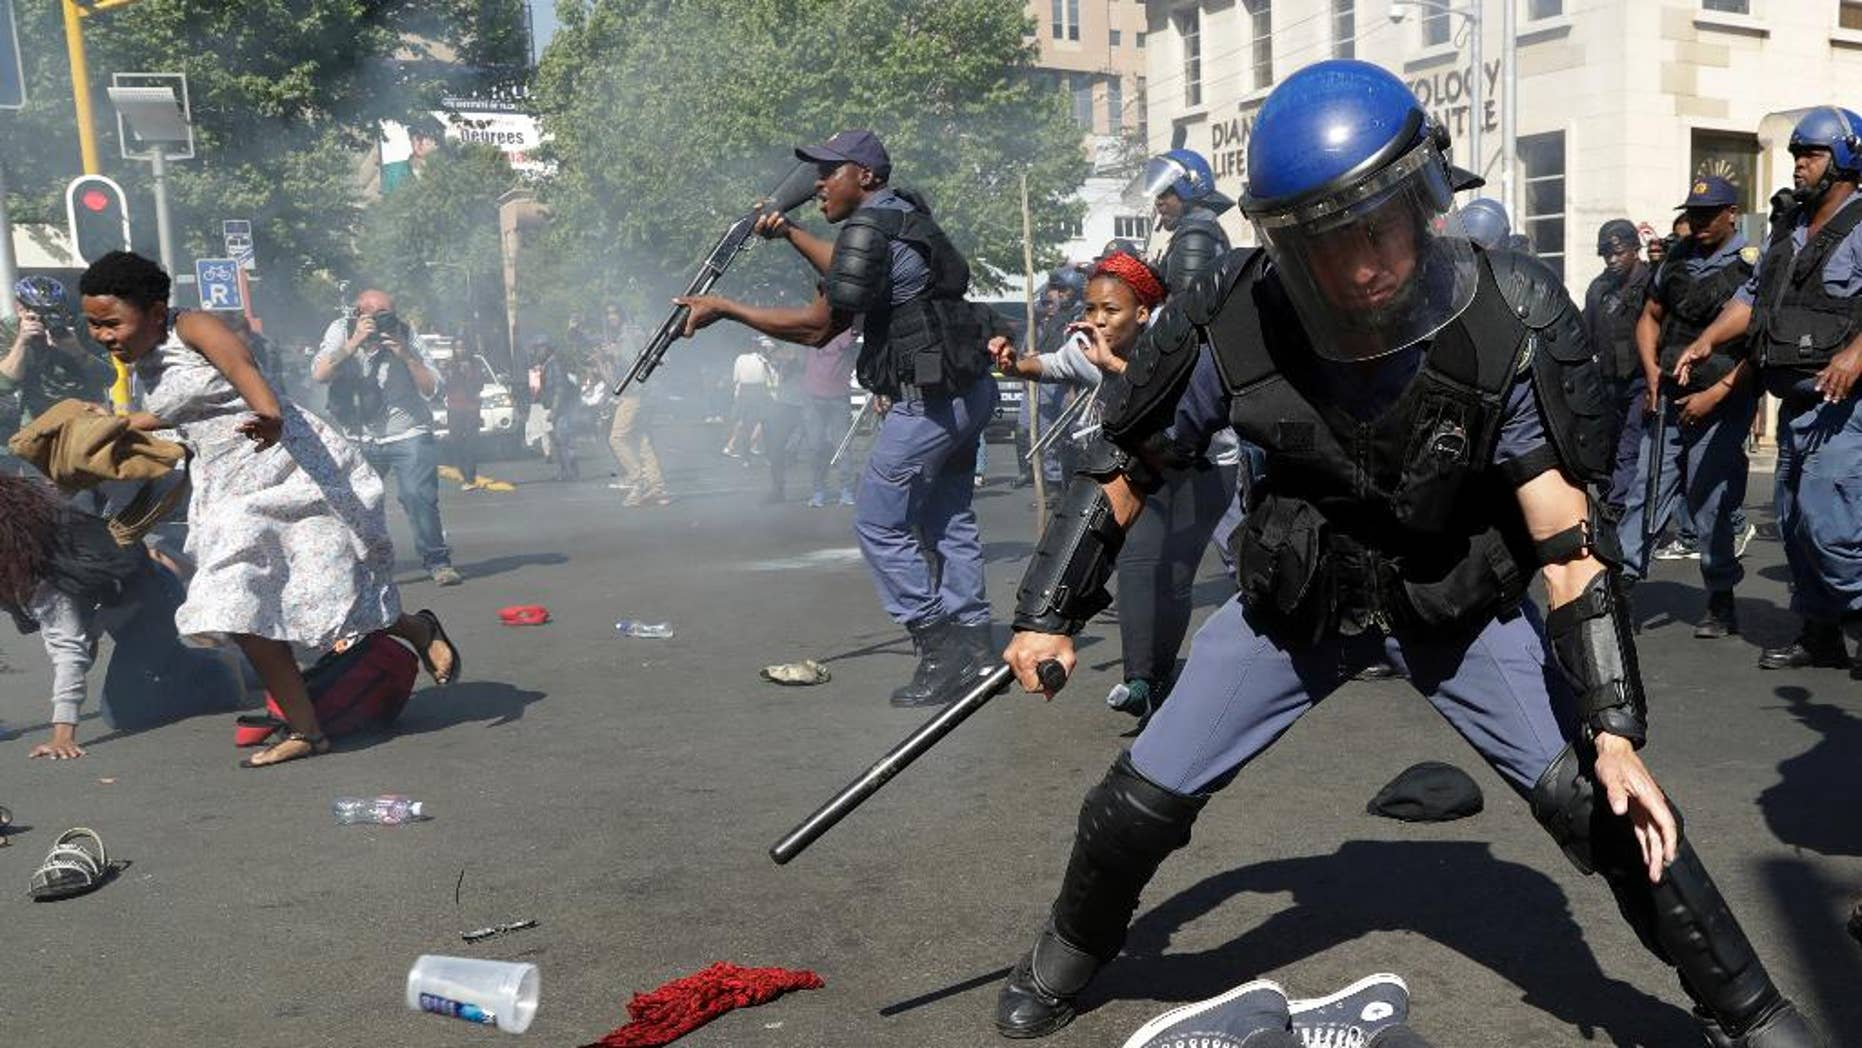 FILE -- In this Wednesday, Sept. 21, 2016 file photo, students run for cover as police fire stun grenades and rubber bullets to disperse them, during a protest for free education at the University of the Witwatersrand in Johannesburg, South Africa. The government on Tuesday, Sept. 27, 2016  called for an investigation, saying protesters were responsible for the death last week at the University of the Witwatersrand in Johannesburg, which has suspended classes because of demonstrations for free education. (AP Photo/Themba Hadebe, File)